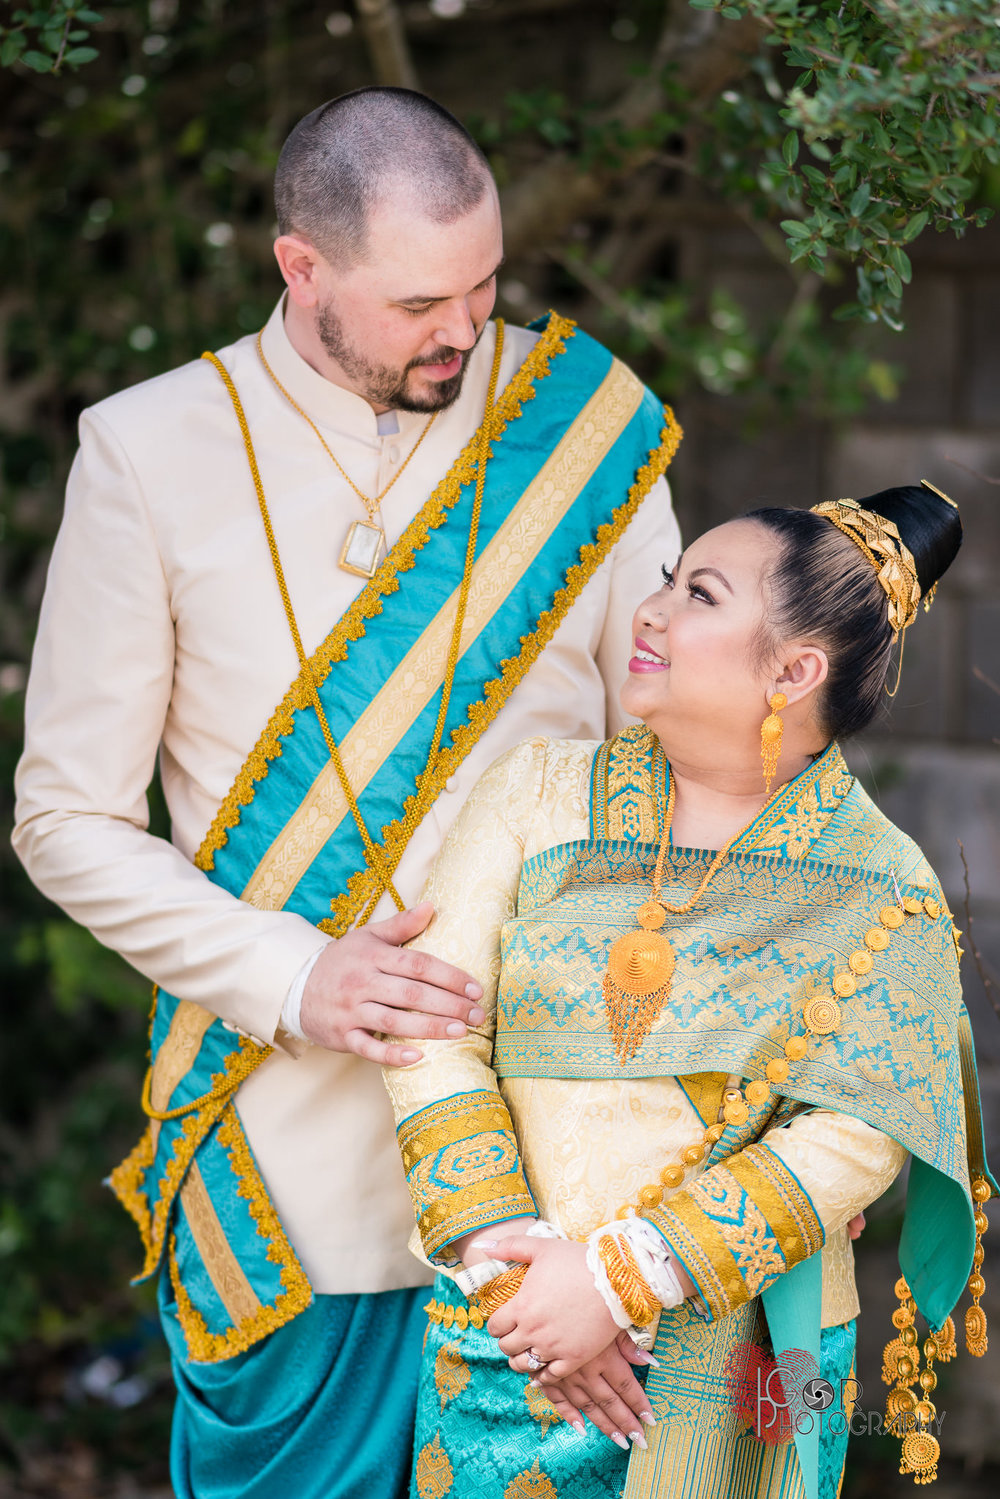 Traditional Laotian Wedding Outfit